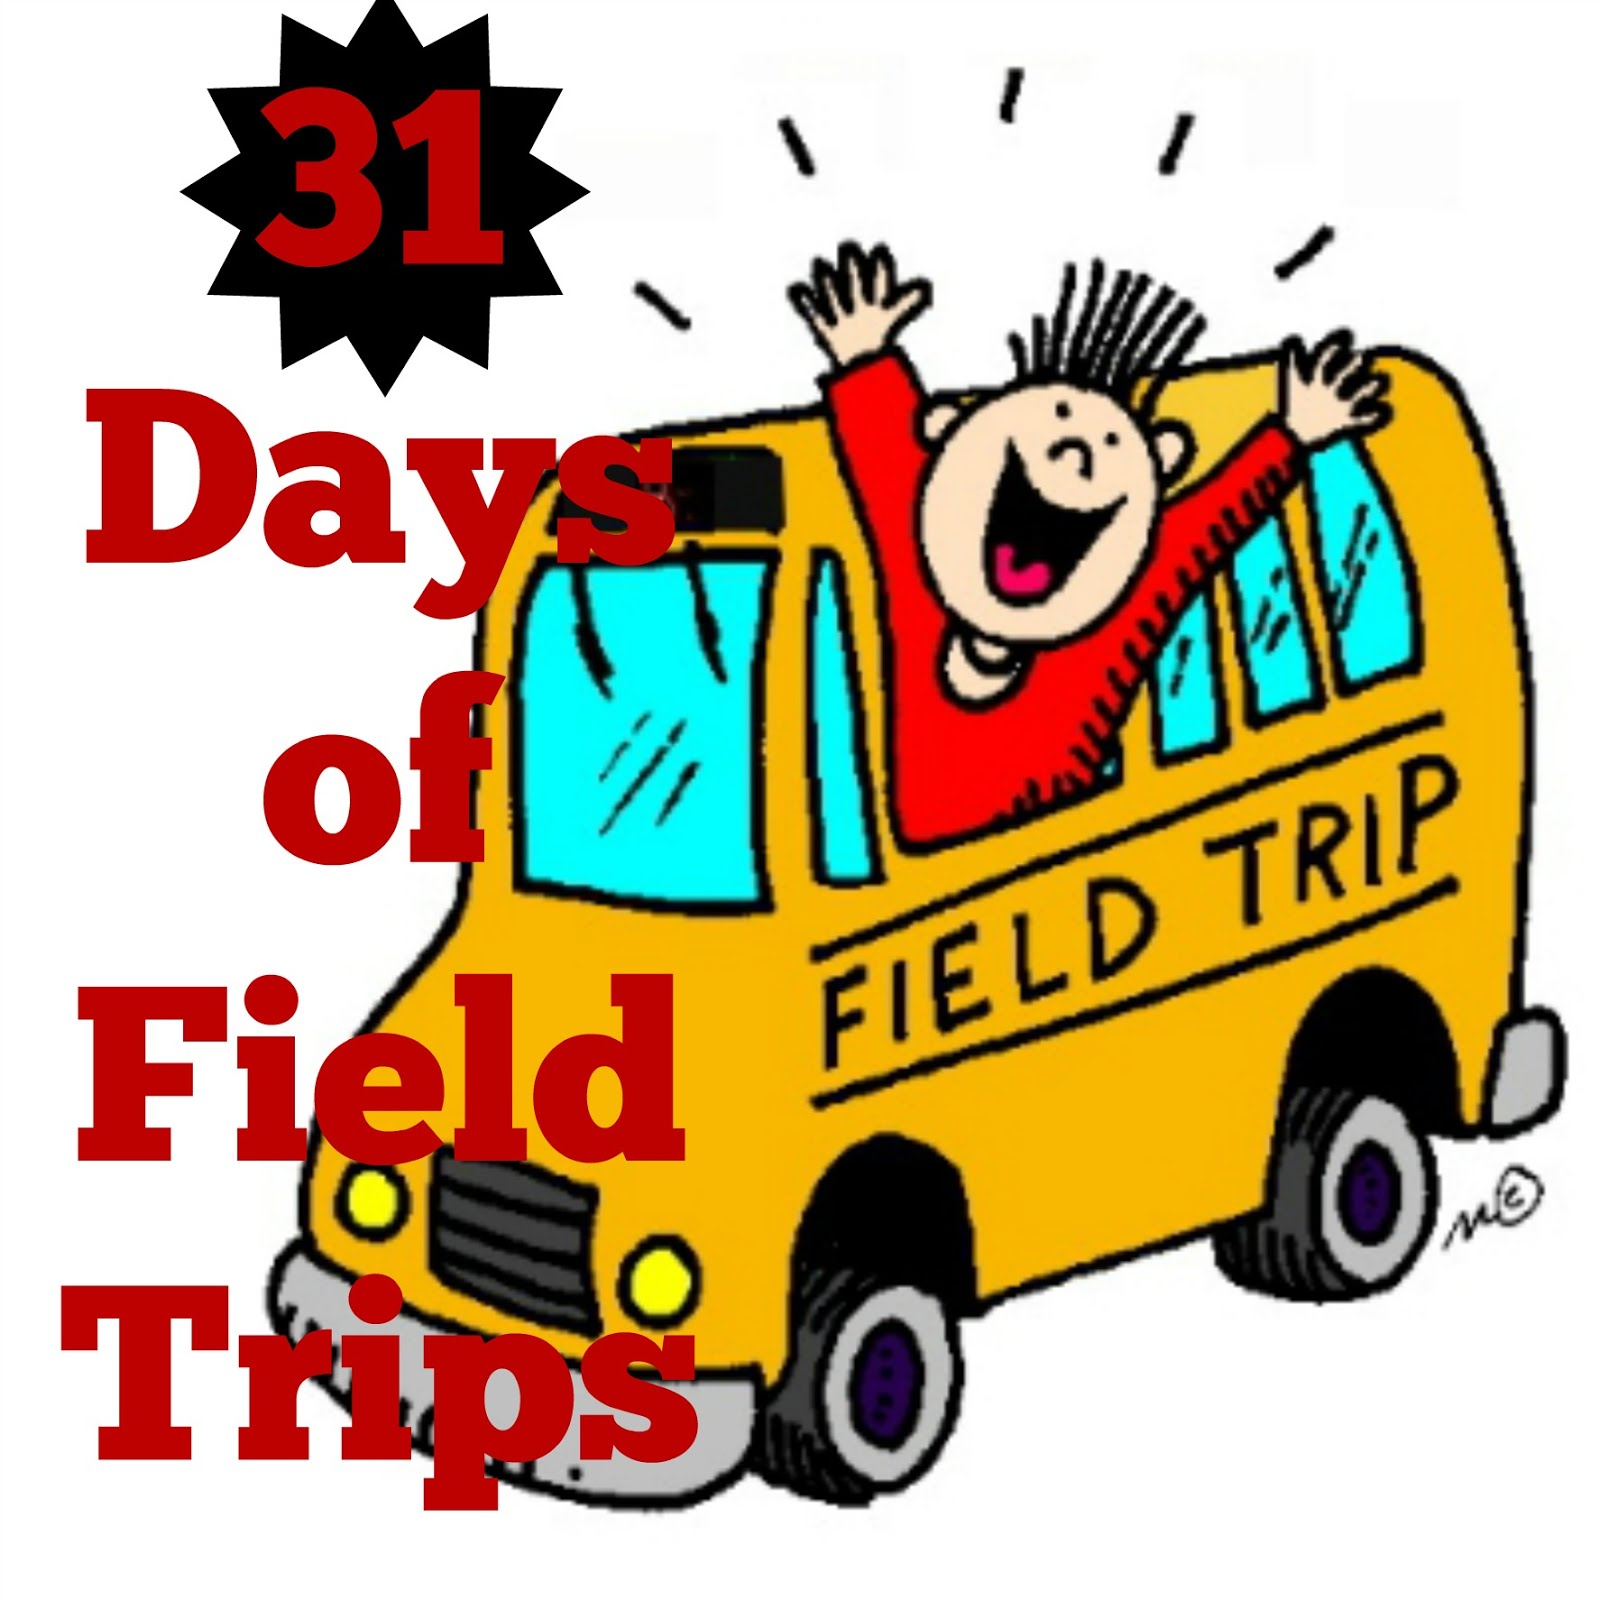 31 Days of Field Trips